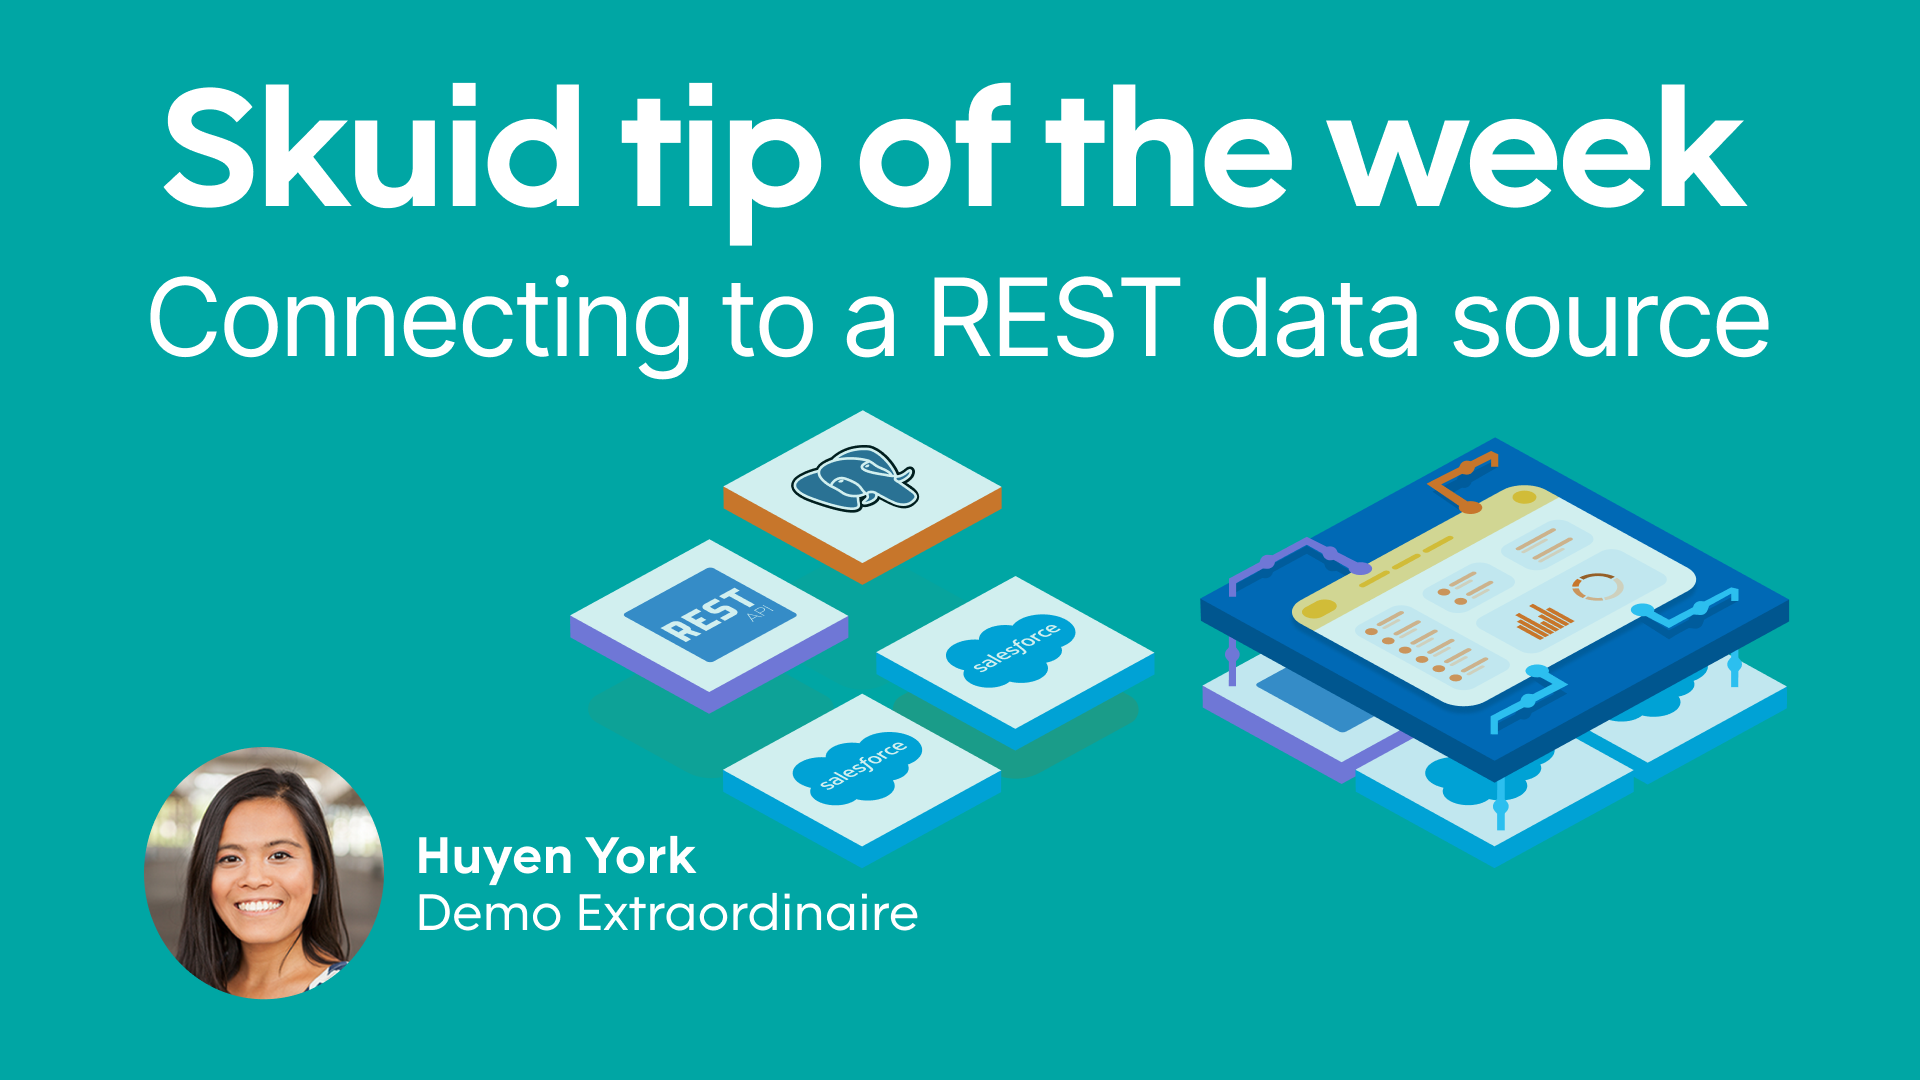 Connecting to a REST data source | Skuid tip of the week